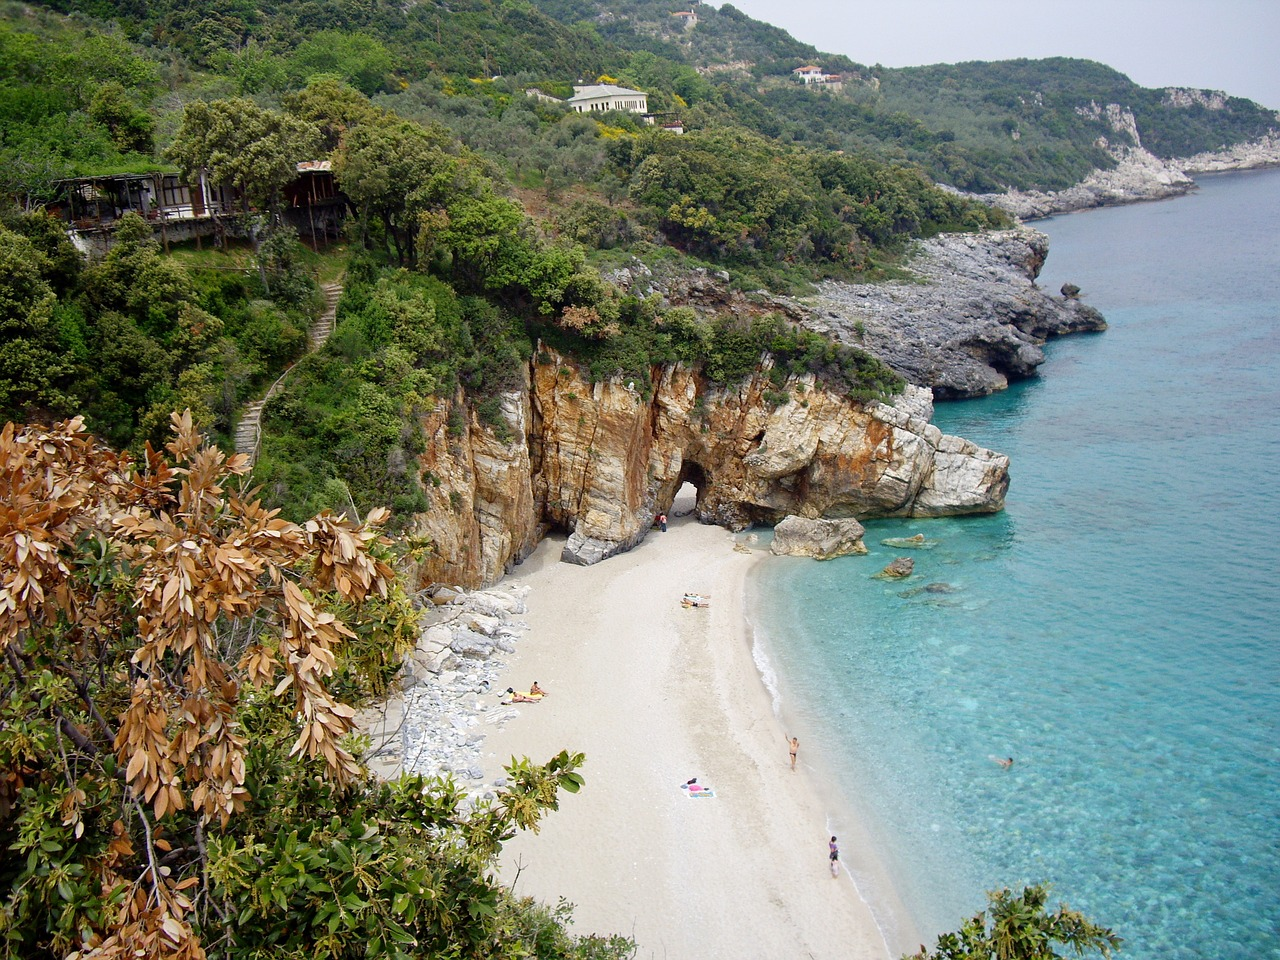 The Pelion Coast